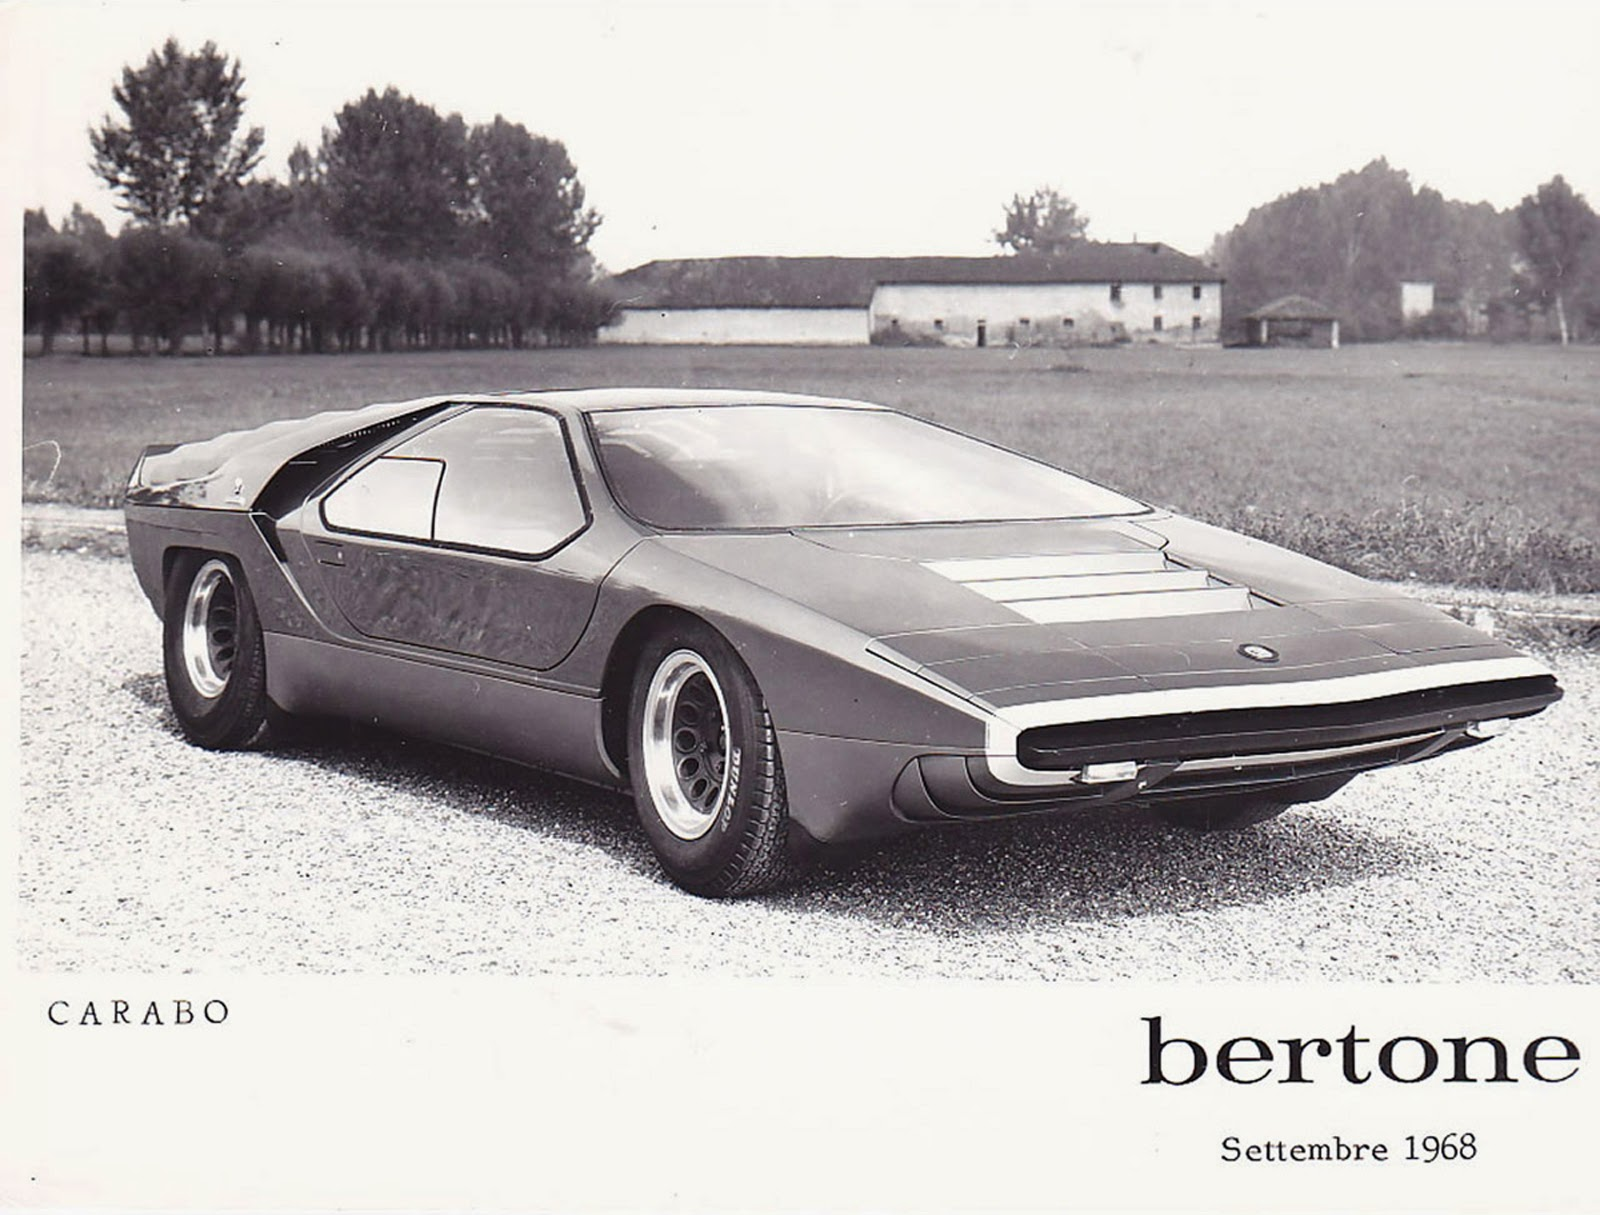 stormwheels settembre 1968 italia carrozzeria bertone alfa romeo carabo prototipo. Black Bedroom Furniture Sets. Home Design Ideas